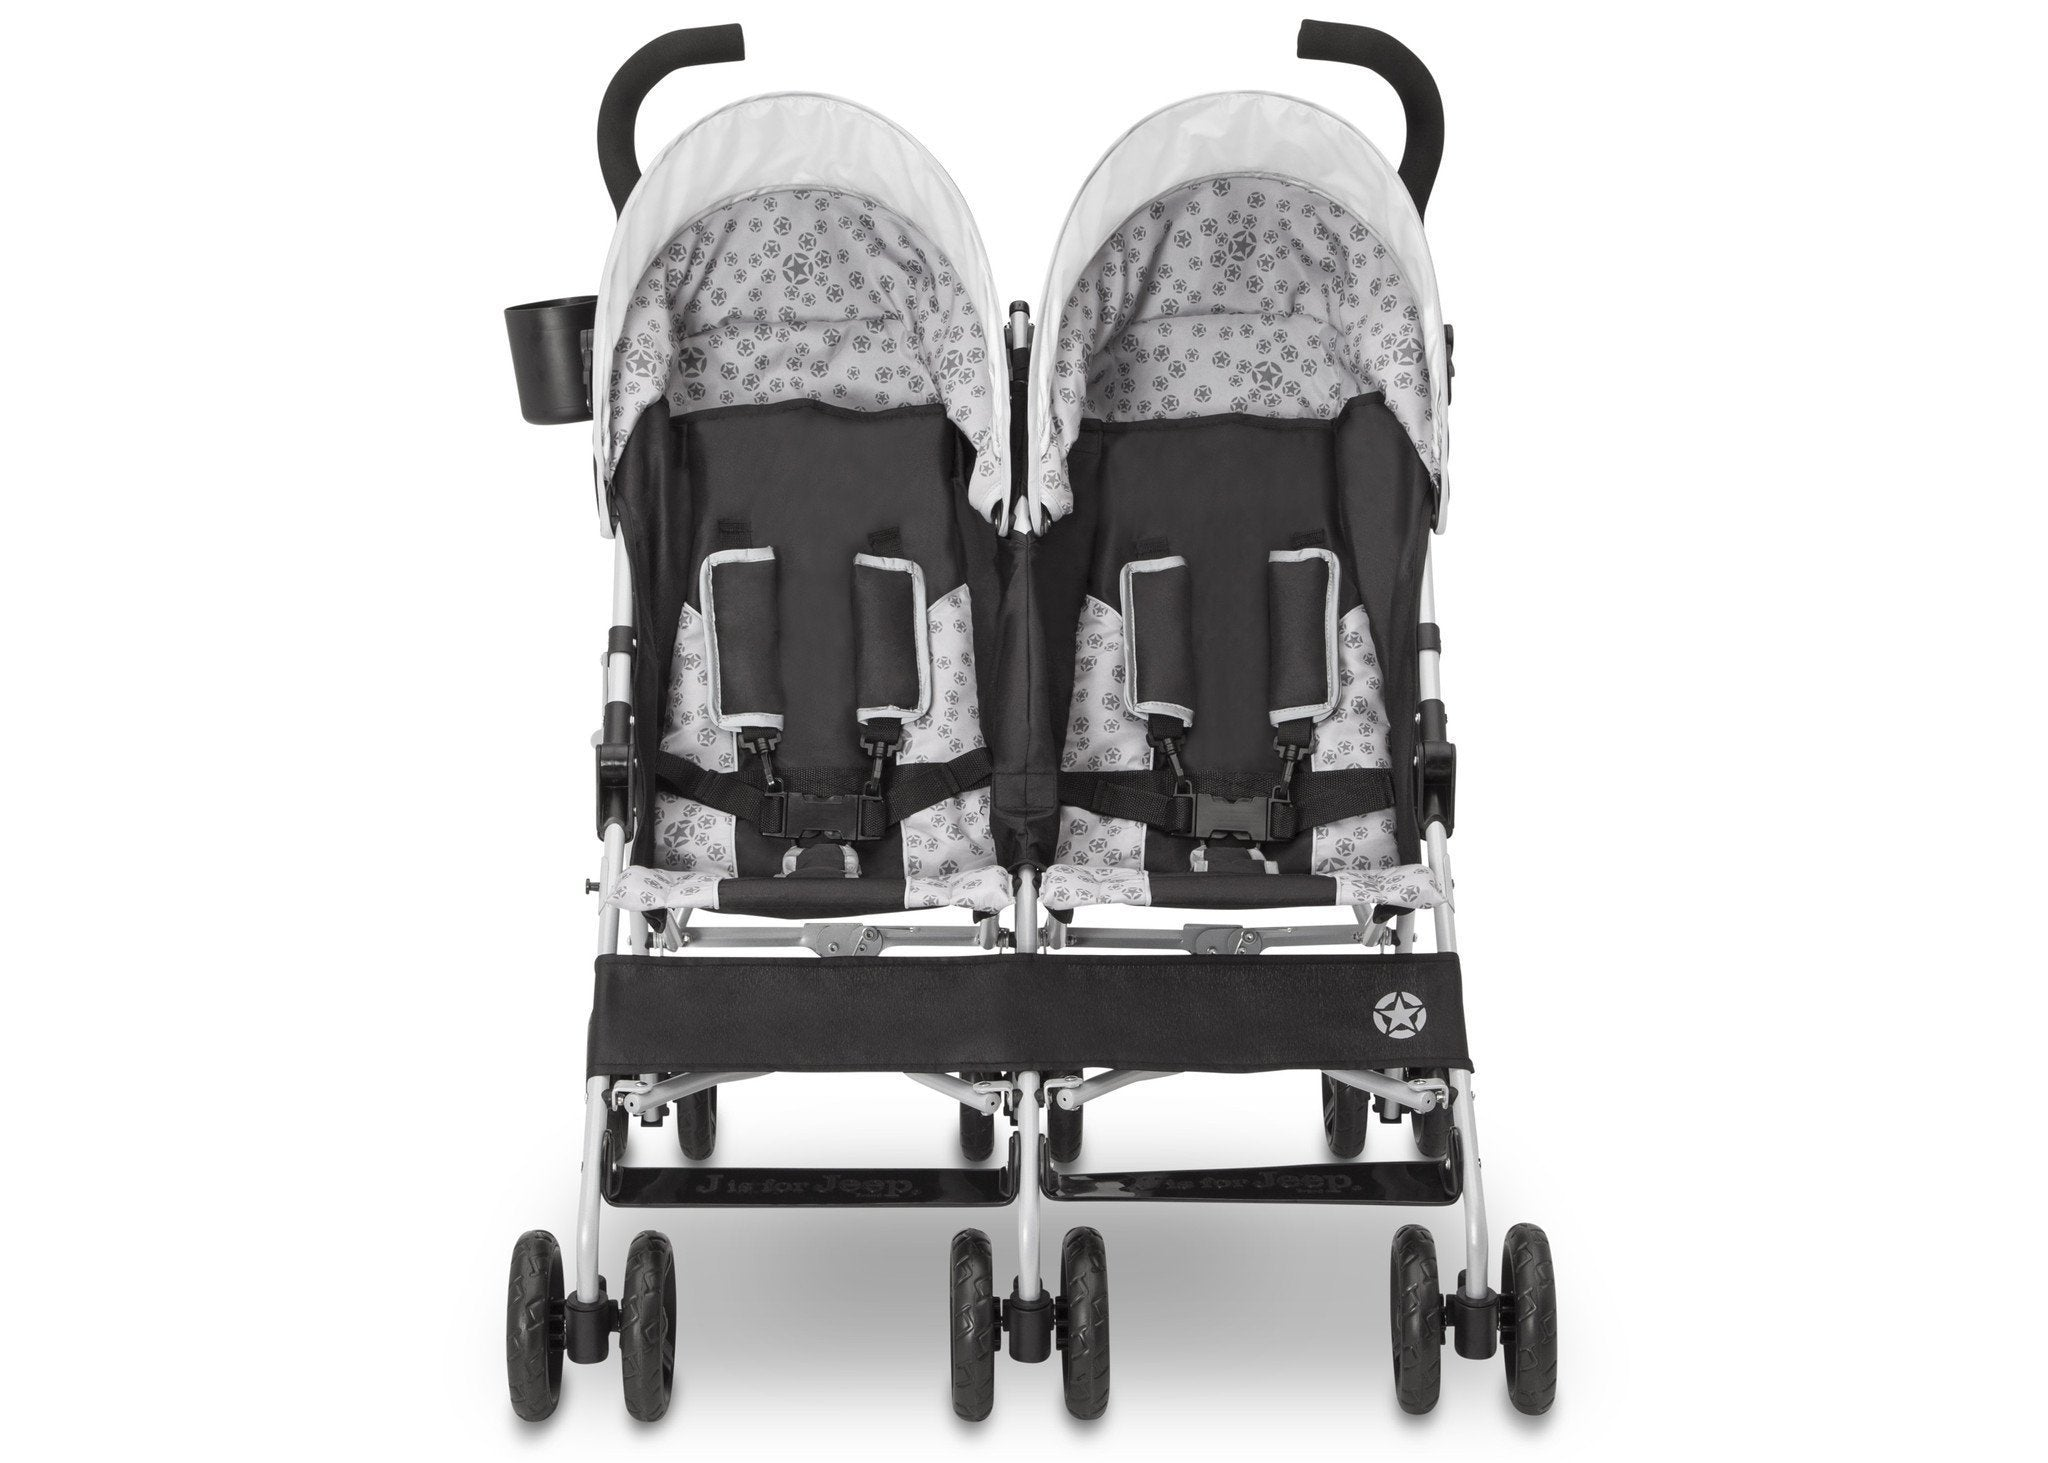 Jeep Brand Scout Double Stroller by Delta Children, Charcoal Galaxy (2271), with multi-position reclining seat